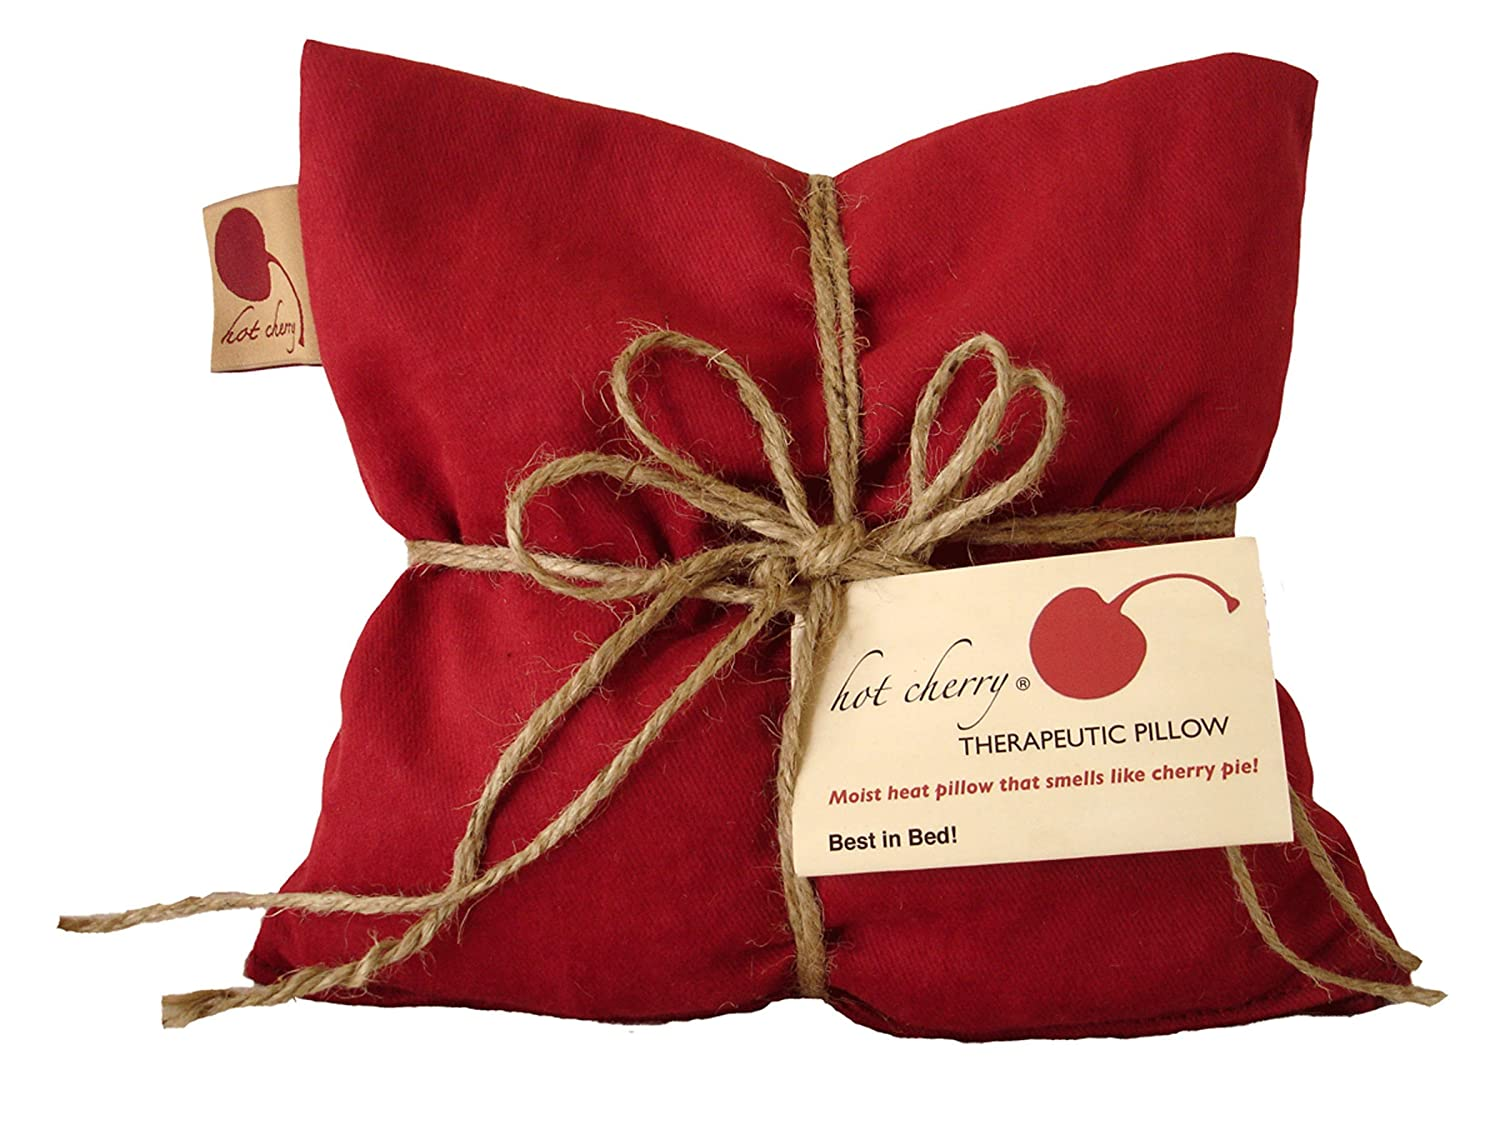 Hot Cherry Pit Pillow Square - Red Denim, Natural-Dyed (Minimal Package/Twine) Natural Moist Heat or Cold Therapy for Muscle Pain, Tension Relief, Headaches, Arthritis, Aromatherapy - Microwavable